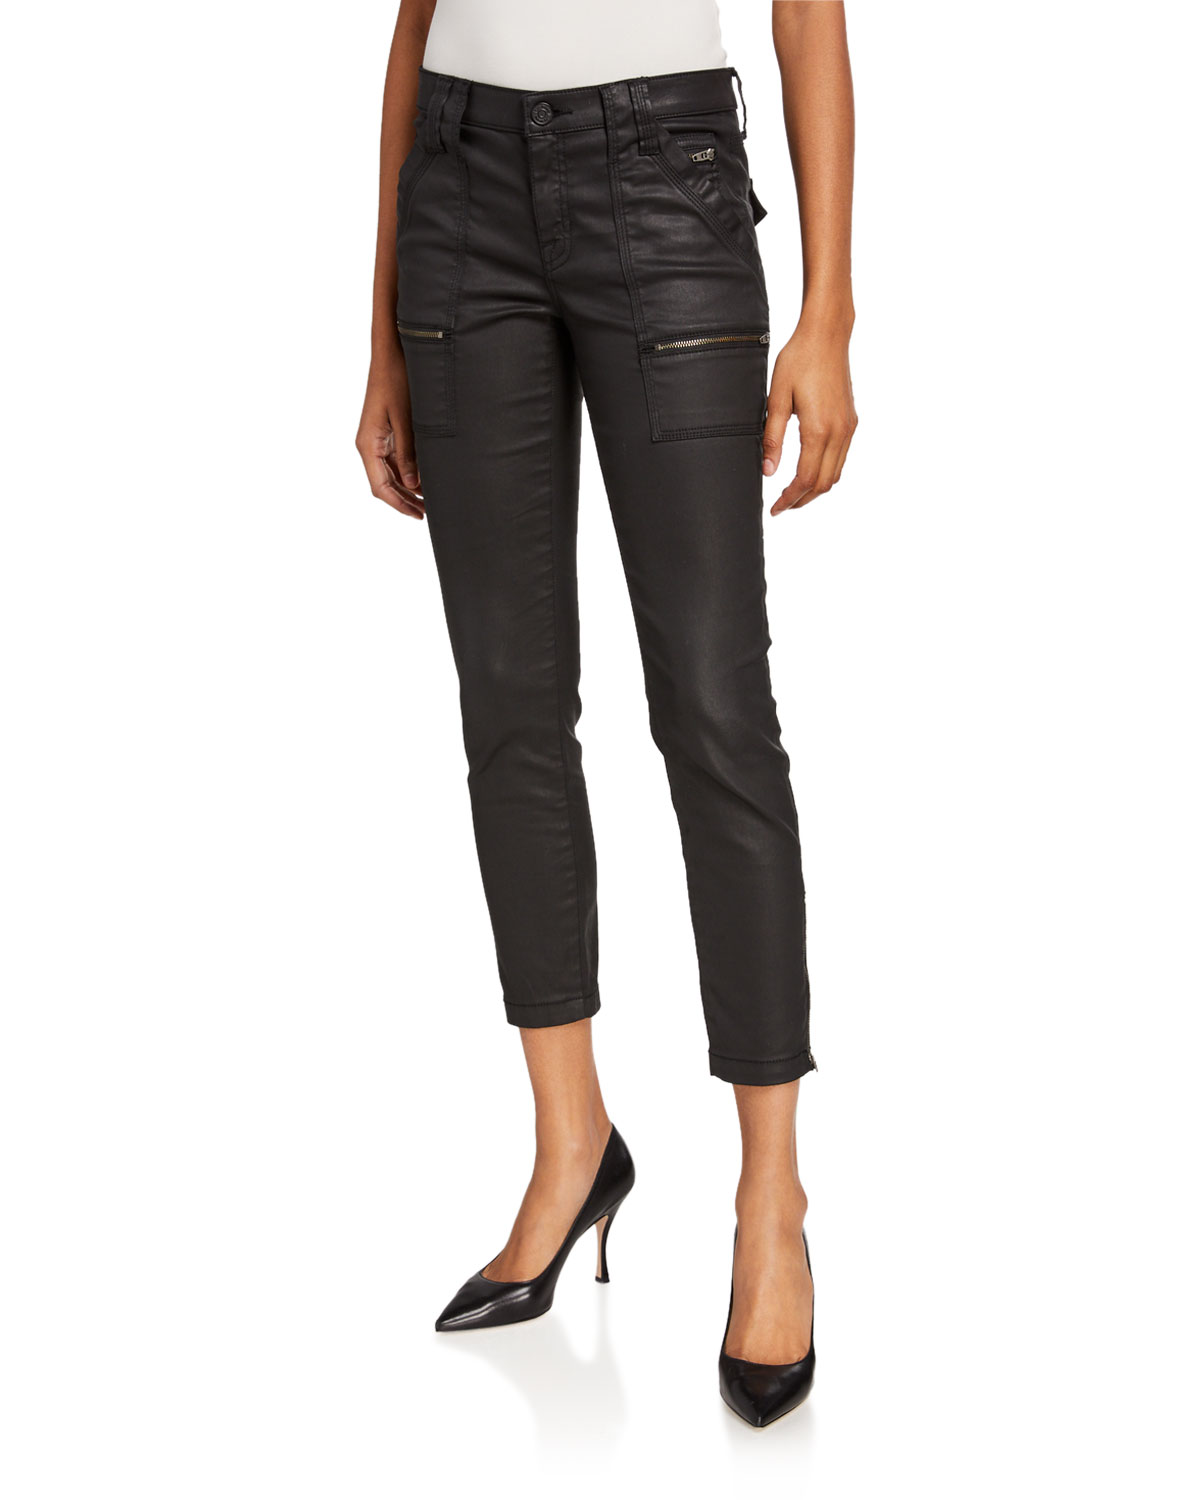 Joie Jeans PARK COATED SKINNY JEANS